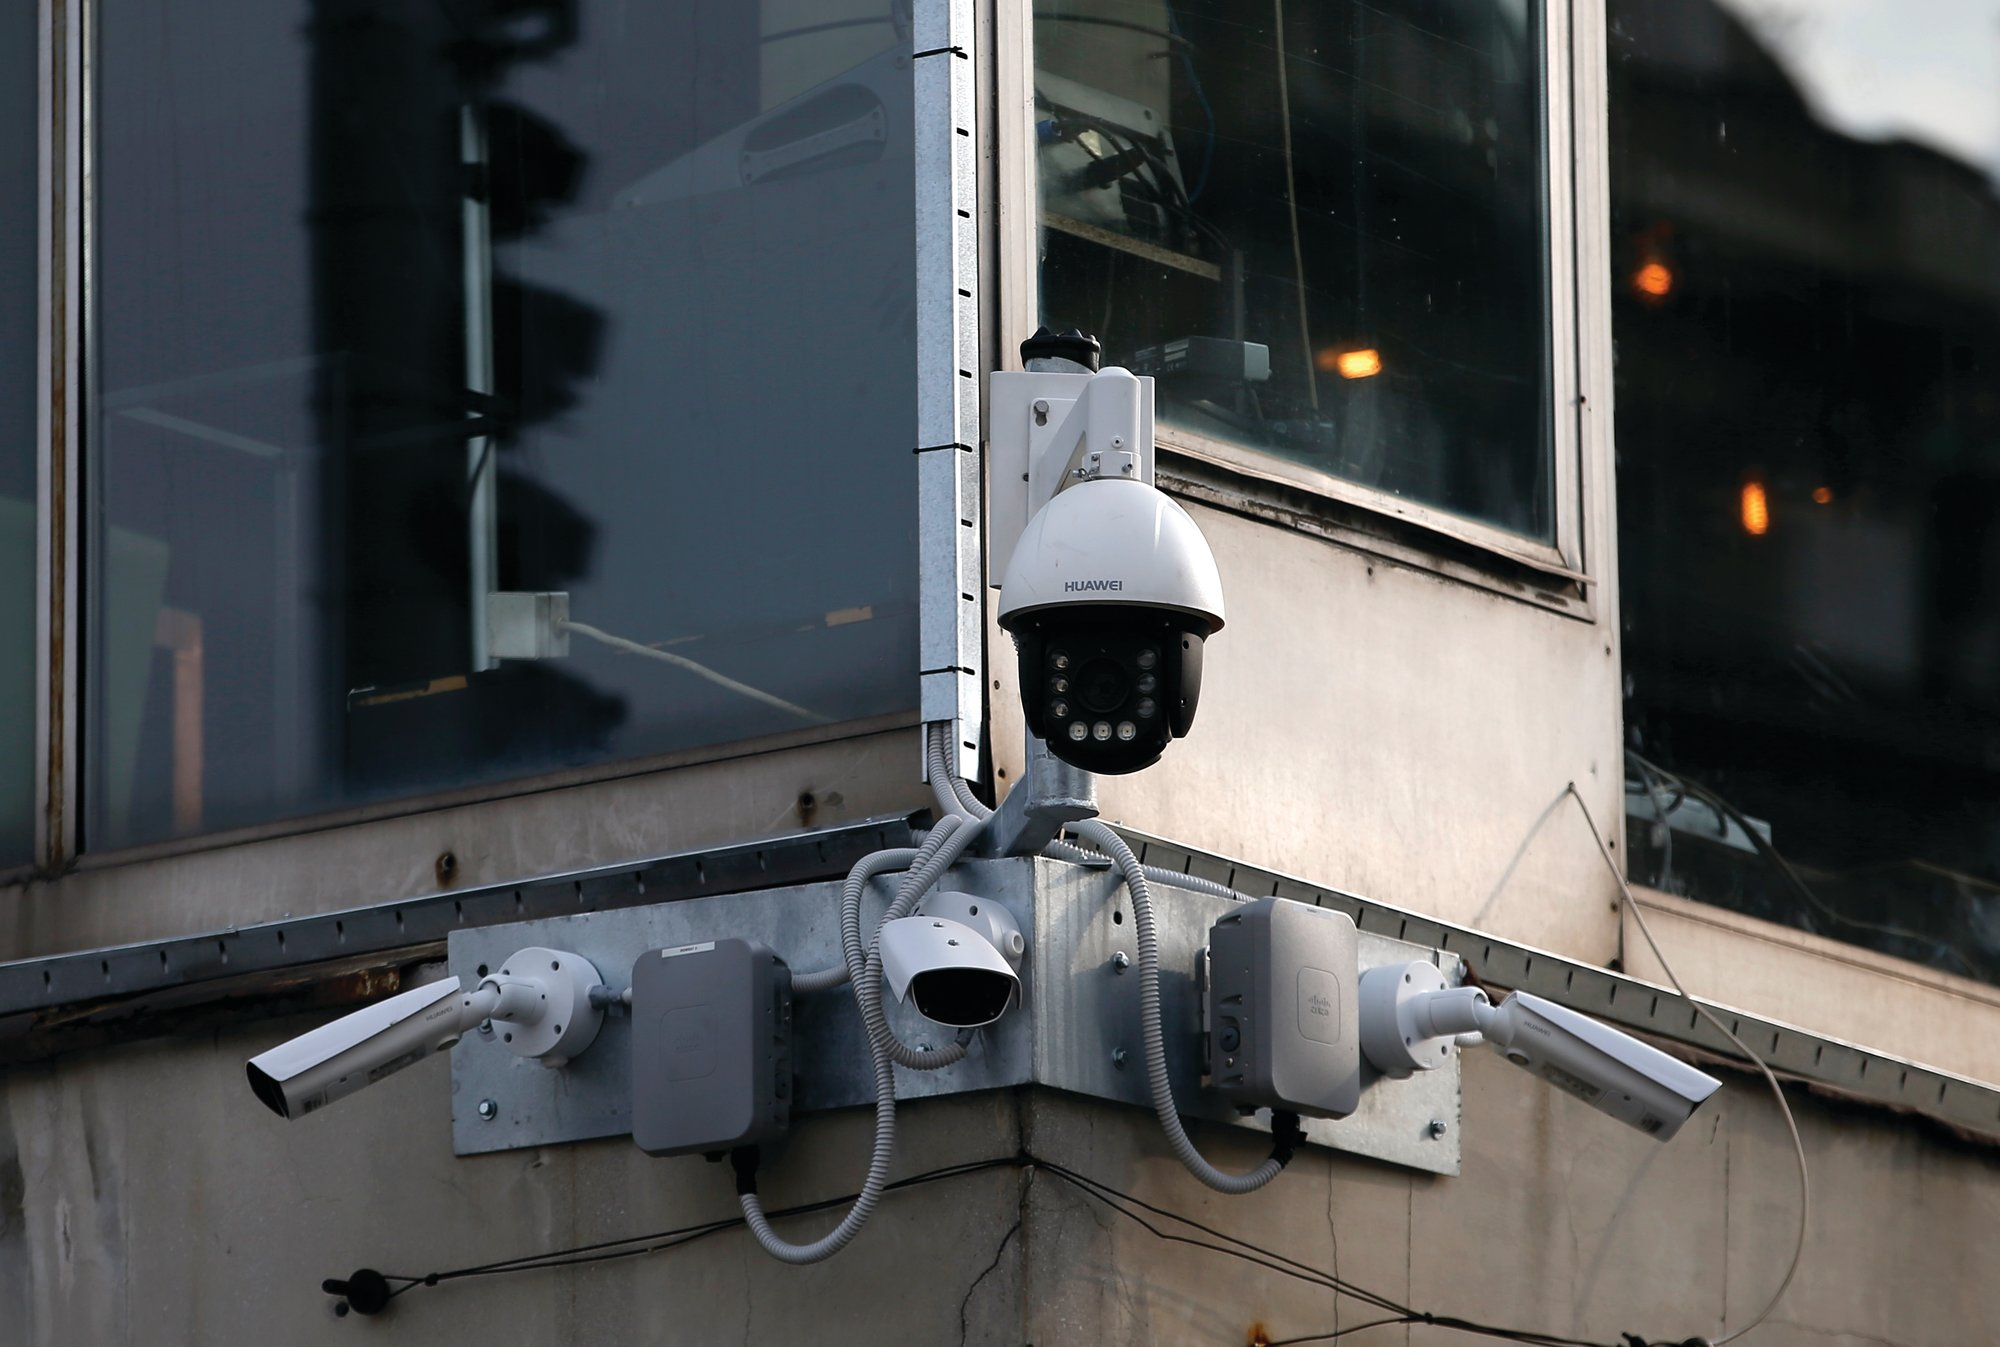 THE ASSOCIATED PRESS  High-tech video cameras hang from an office building in downtown Belgrade, Serbia. The cameras, equipped with facial recognition technology, are being rolled out across hundreds of cities around the world, particularly in poorer countries with weak track records on human rights where Beijing has increased its influence through big business deals.